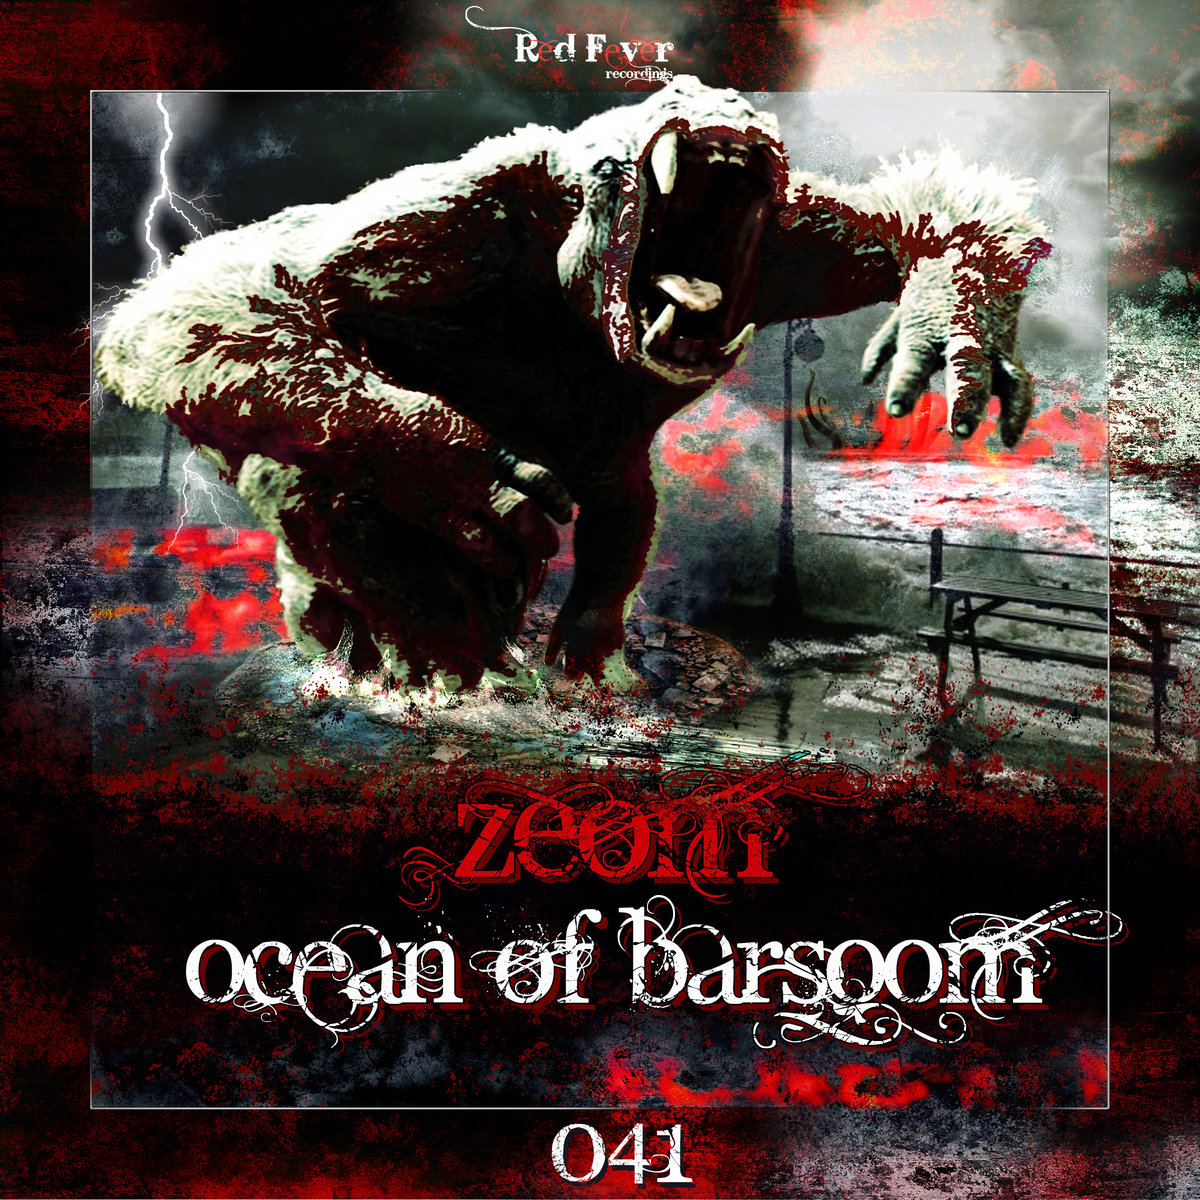 Zeom - Ocean Of Barsoom